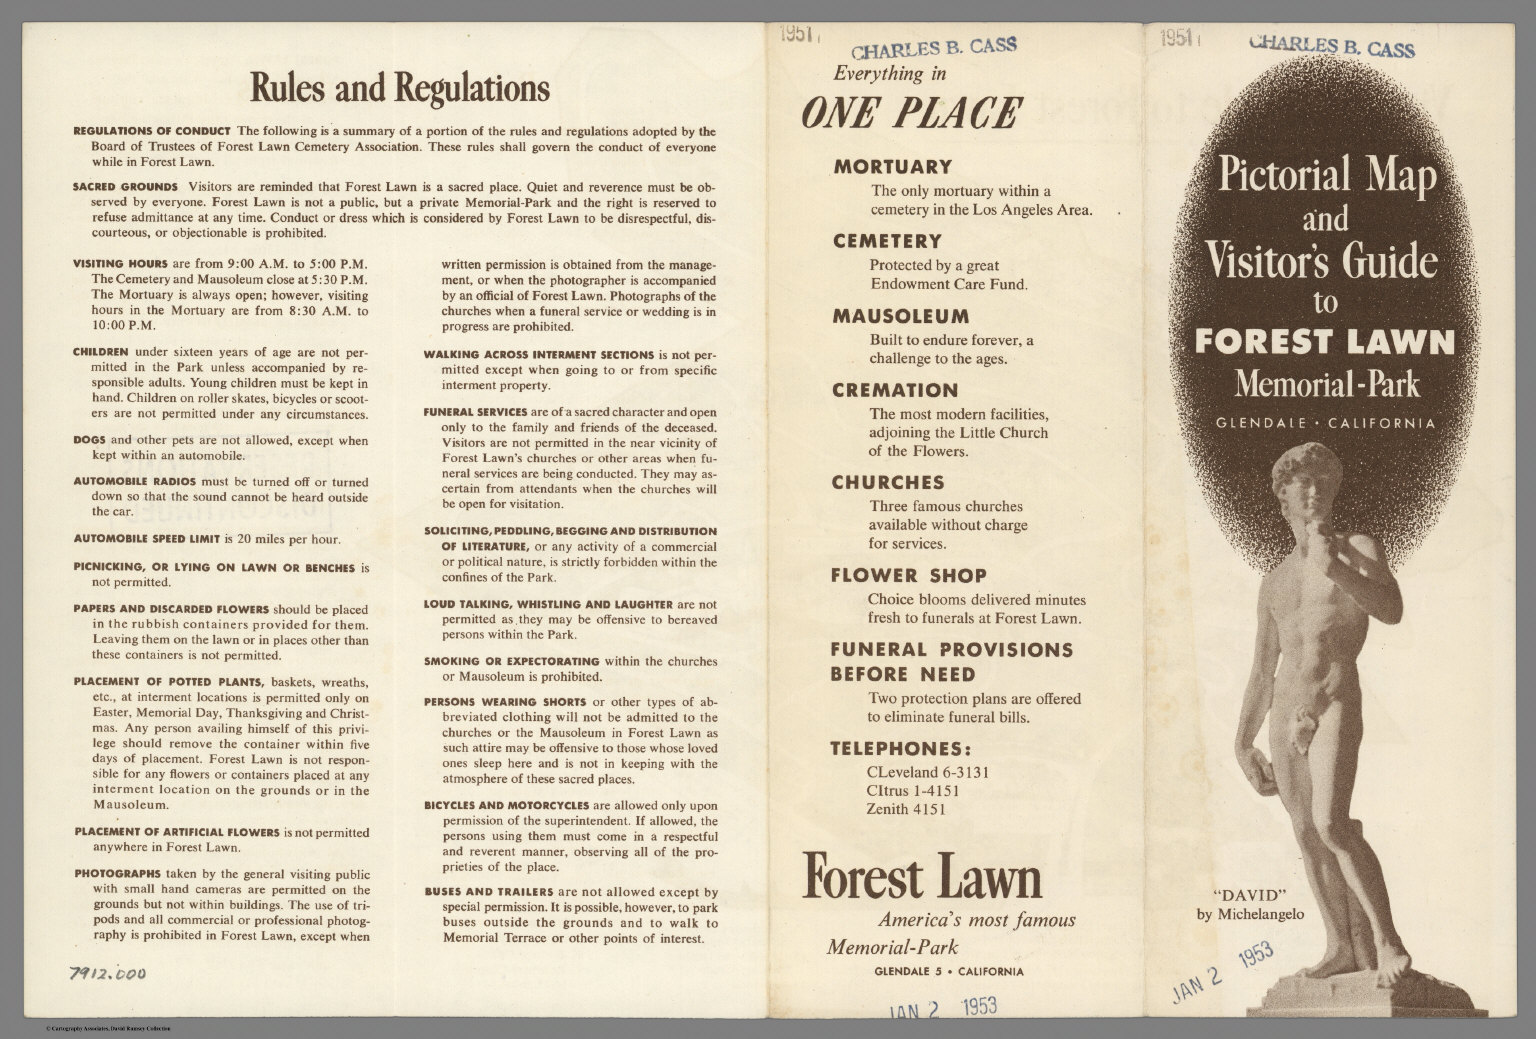 Text Pictorial Map and Visitors Guide to Forest Lawn Memorial